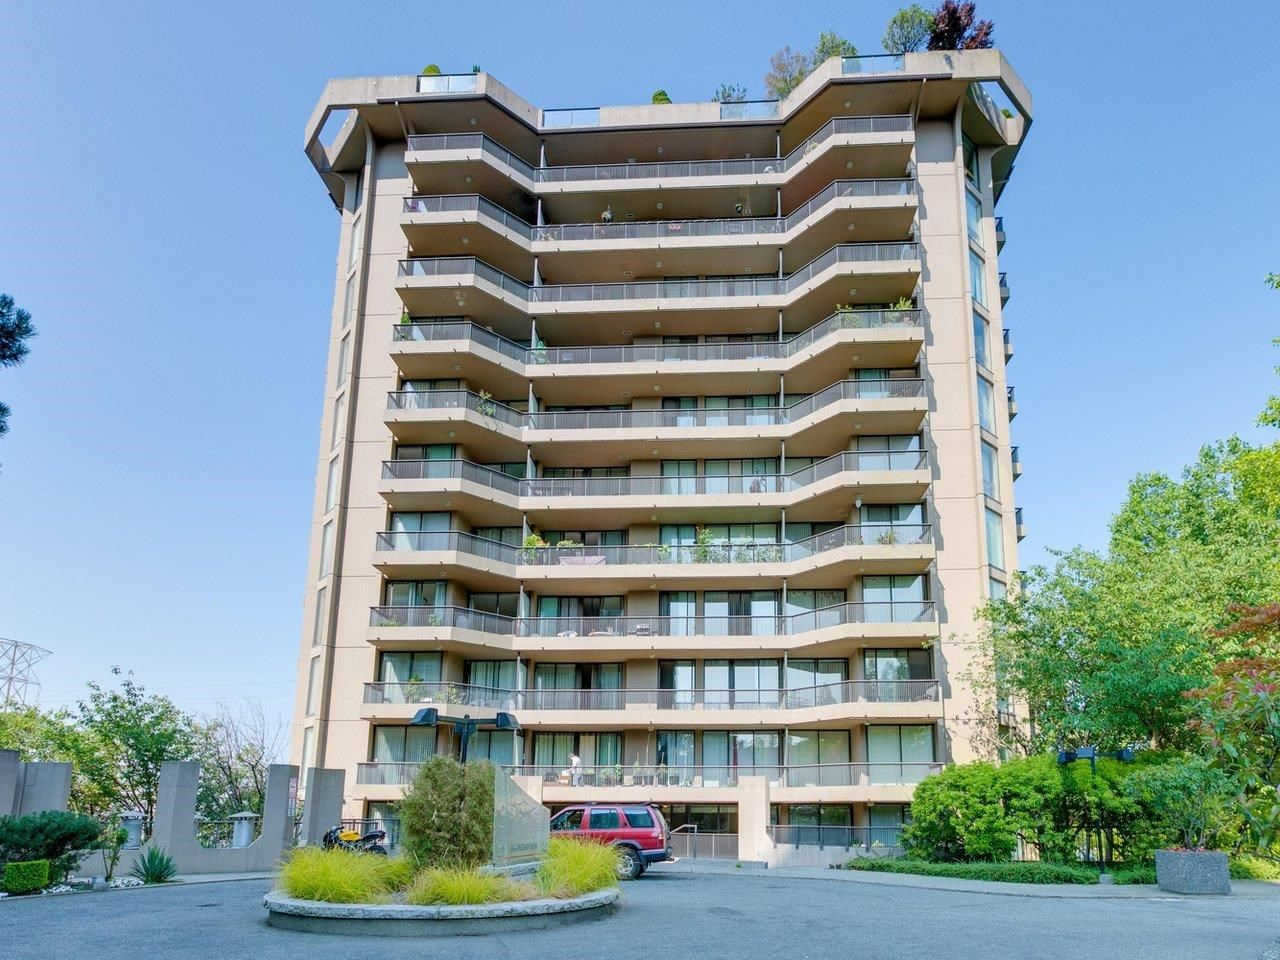 Main Photo: 606 3740 ALBERT Street in Burnaby: Vancouver Heights Condo for sale (Burnaby North)  : MLS®# R2606688